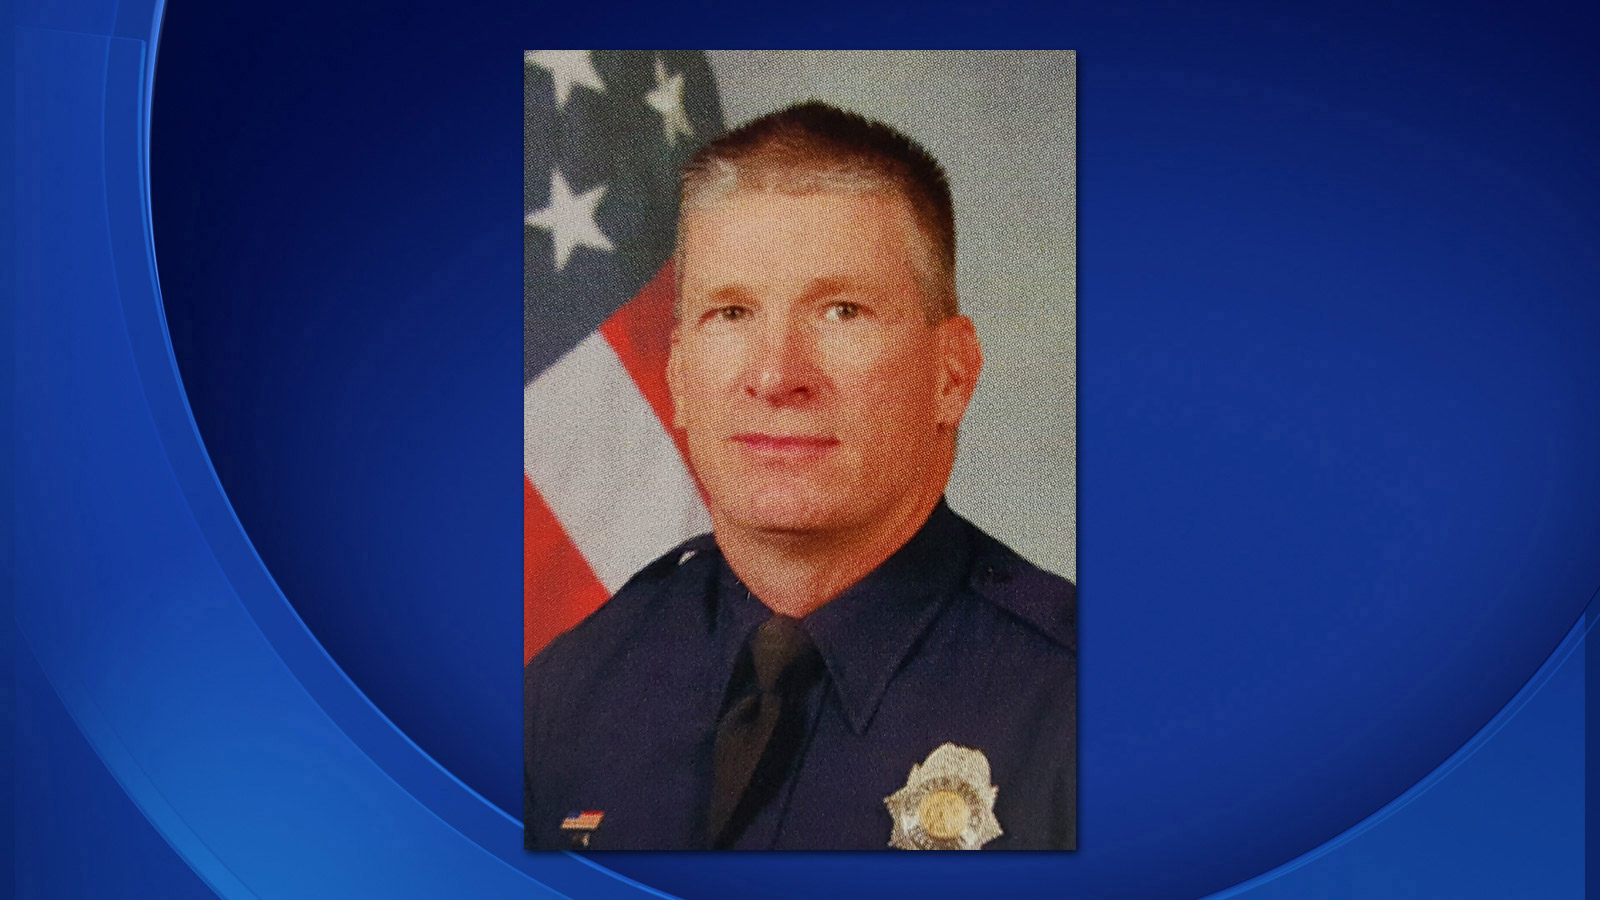 Denver Police Officer John Ruddy (credit: Denver Police)